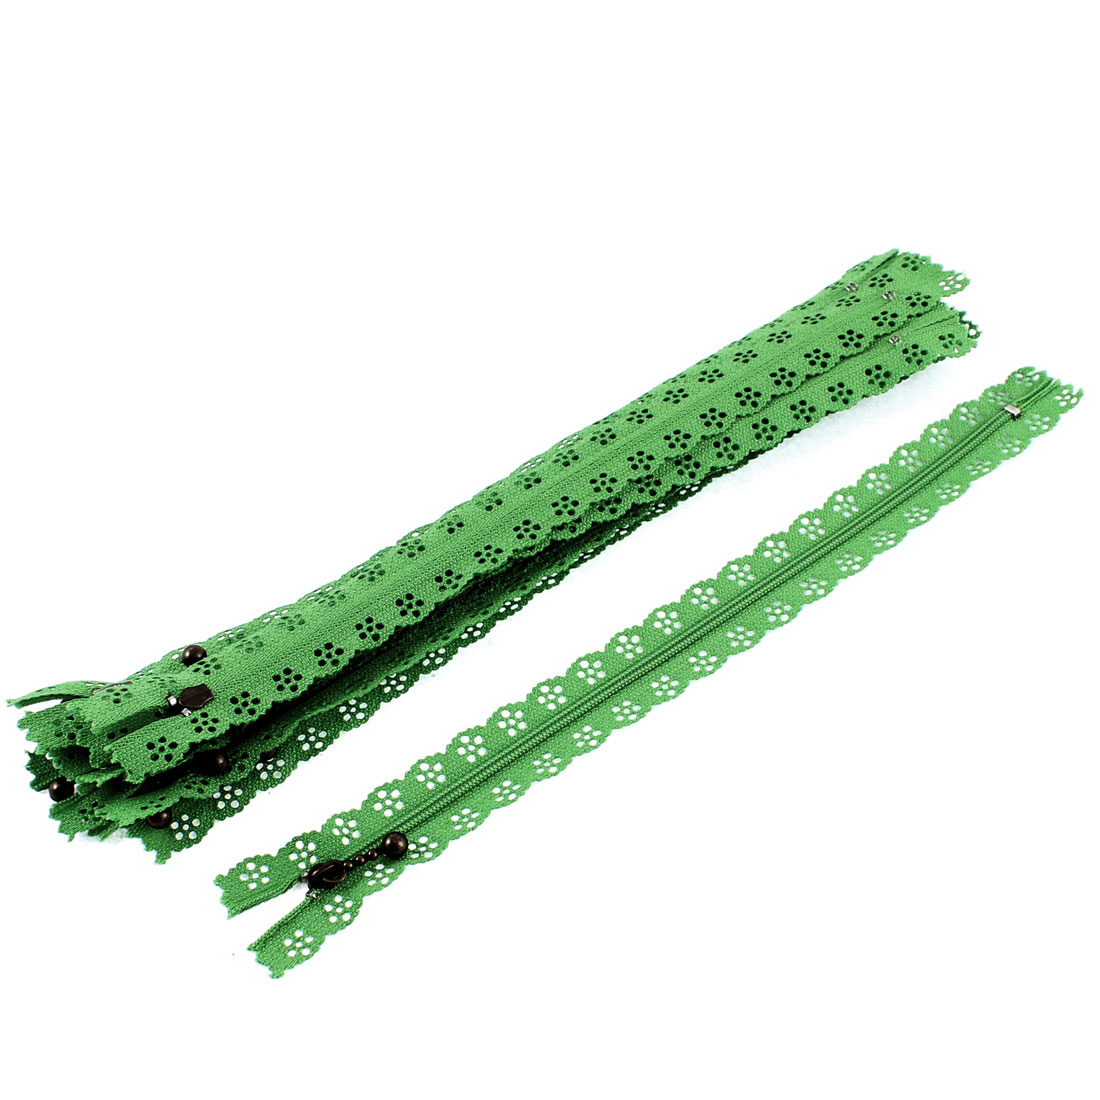 Green Nylon Floral Lace Closed End Zip Zippers 10 Pcs